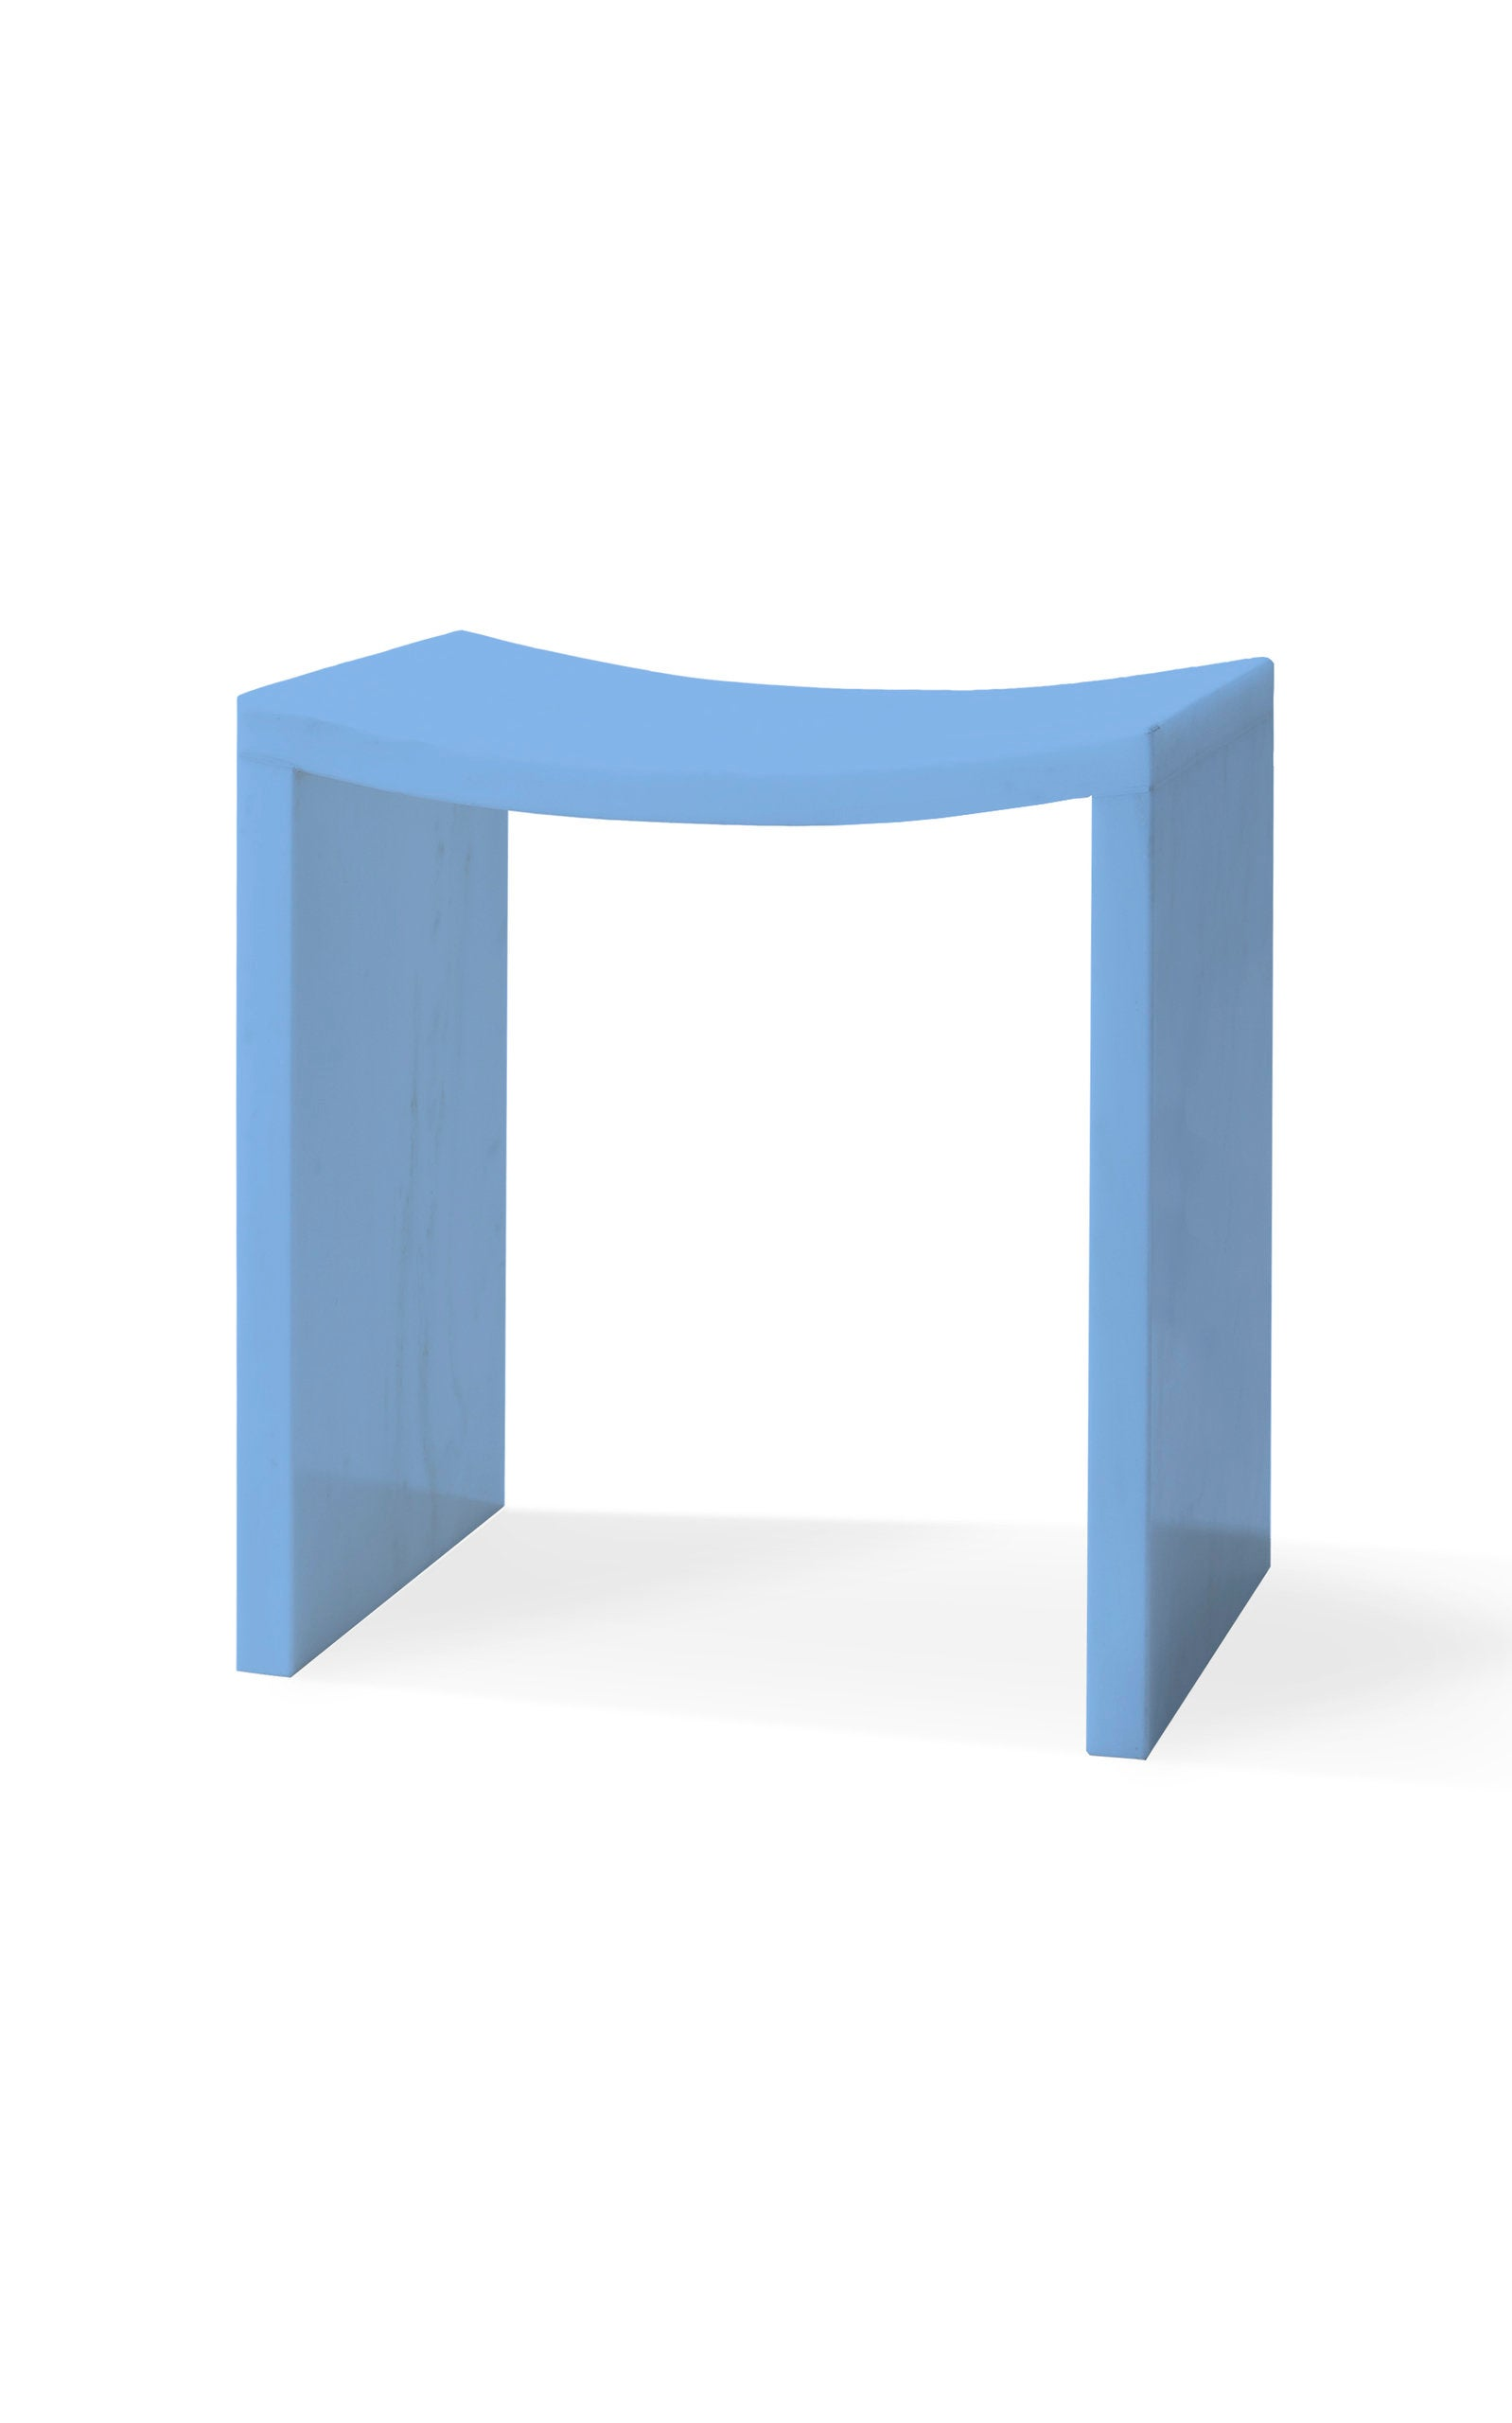 large_objects-of-common-interest-blue-light-blue-bent-stool